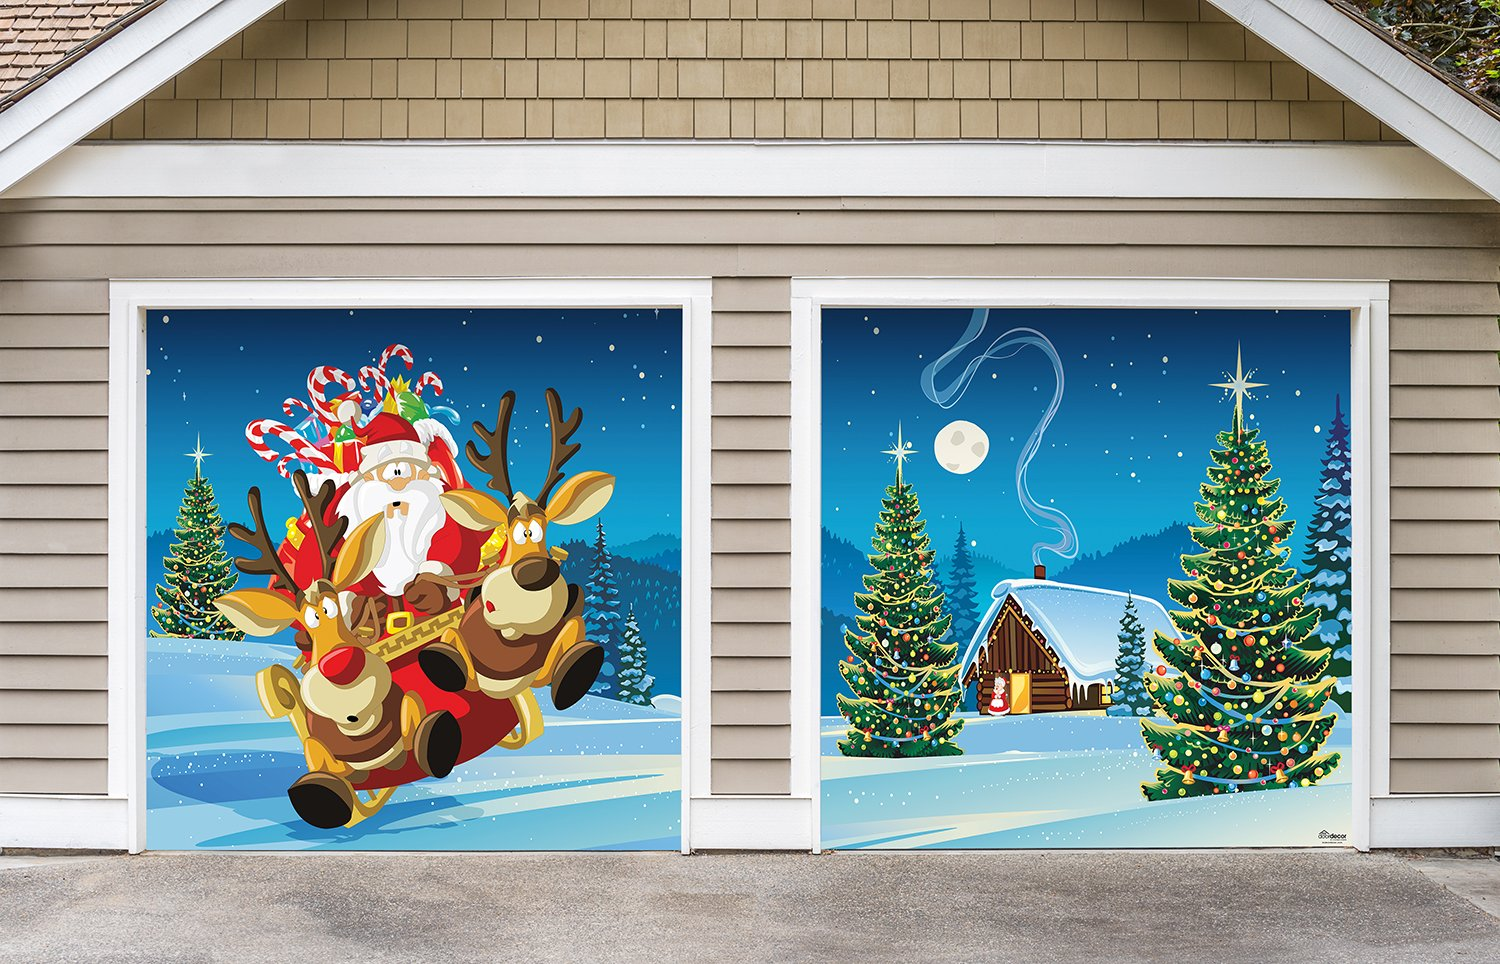 Outdoor Christmas Holiday Garage Door Banner Cover Mural Décoration - Santa's Take Off - Outdoor Holiday 2 Car Split Garage Door Banner Décor Sign , Two 7'x 8' Graphic Kits